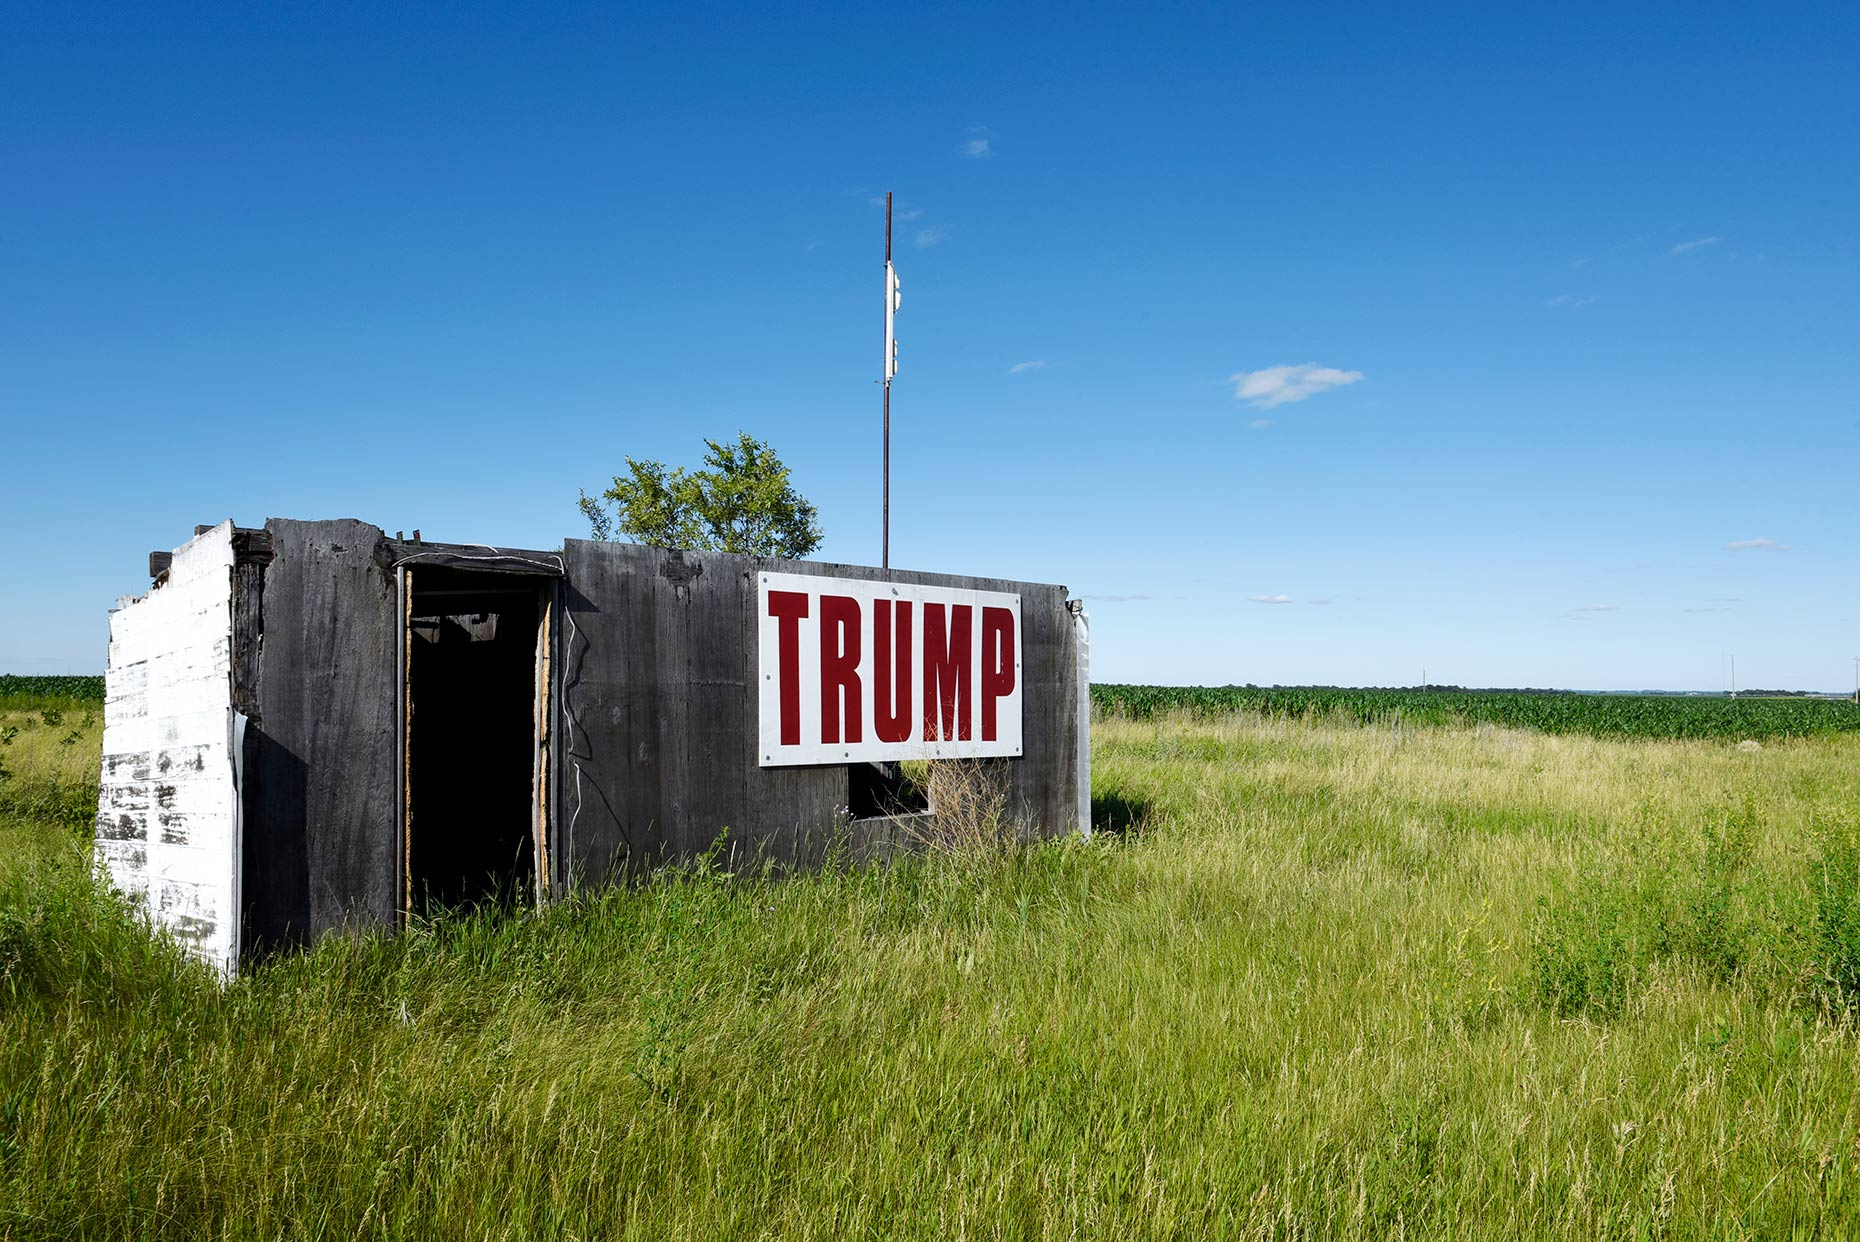 A photo of rural North Dakota taken by Fargo, North Dakota photojournalist Dan Koeck